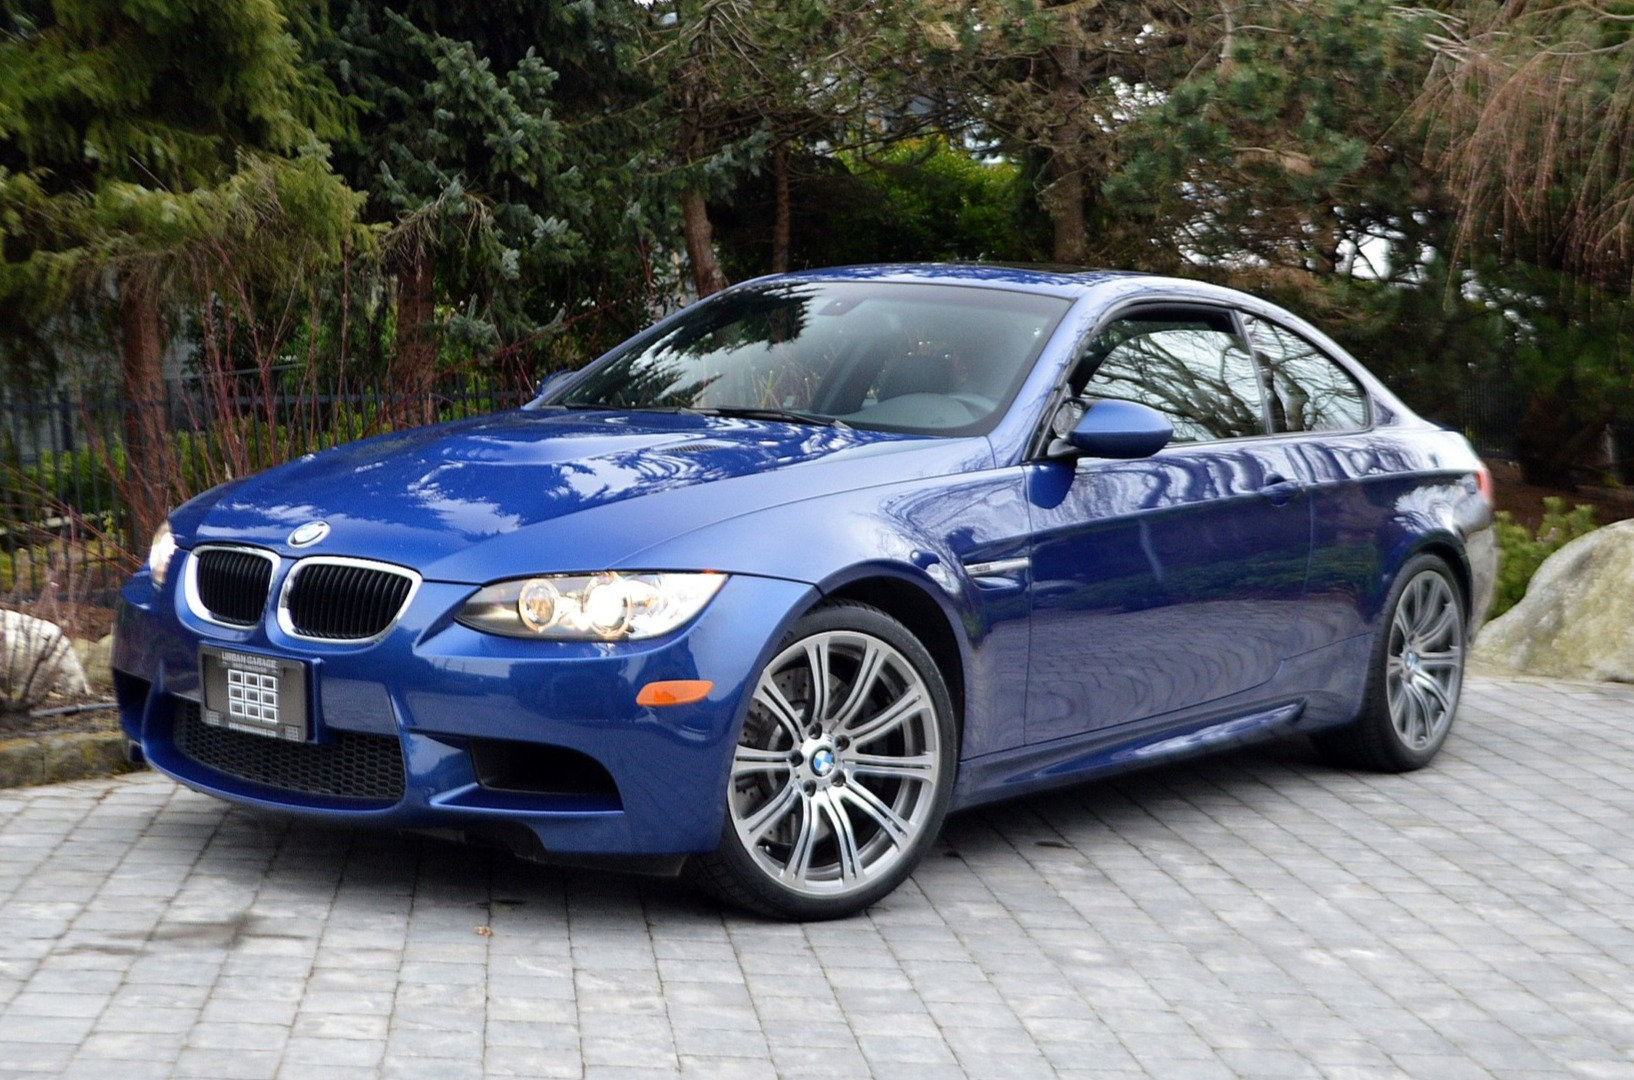 hight resolution of 2010 bmw m3 coupe 6 speed for sale on bat auctions sold for 32 500 on april 8 2019 lot 17 711 bring a trailer